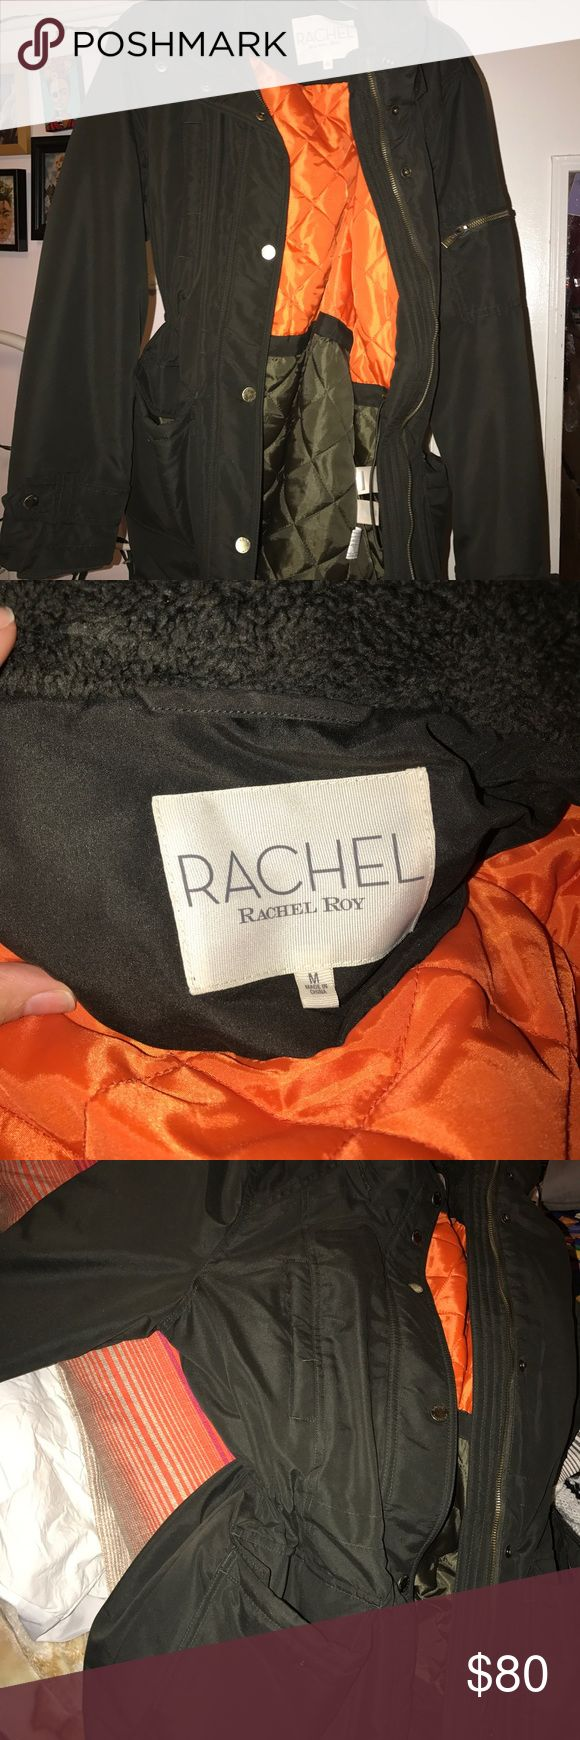 Rachel Roy winter jacket Brand new Rachel Roy jacket, great for the cold season! Used once. No flaws! There's an adjustable strap on the inside if you would like to make it lose or tight. Rachel Roy Jackets & Coats Trench Coats